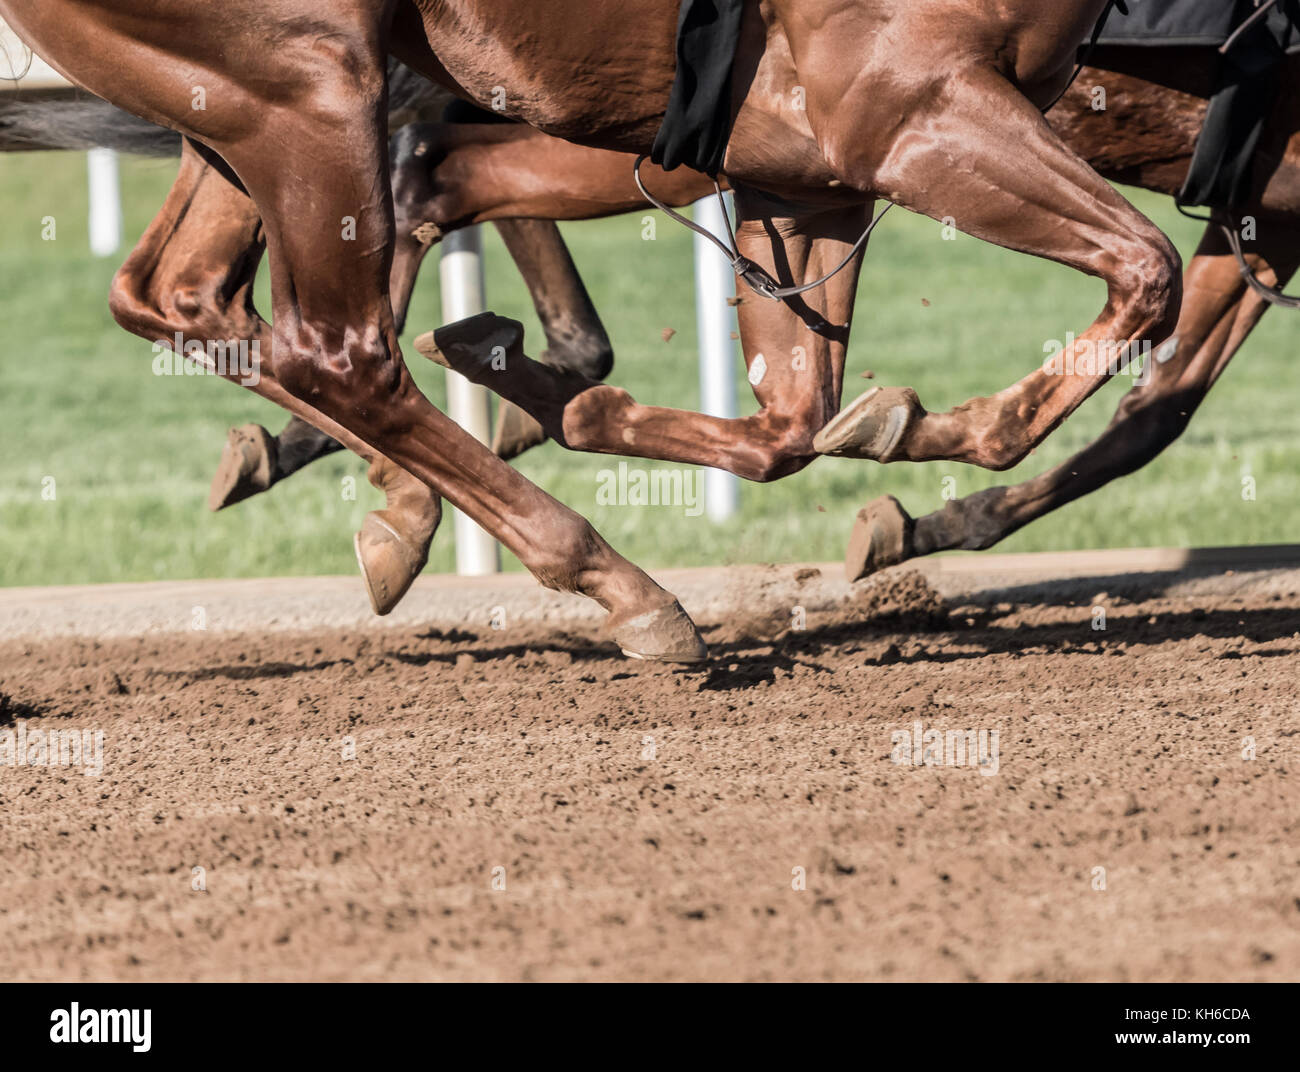 Chestnut Horse Legs Pound the Dirt Track - Stock Image